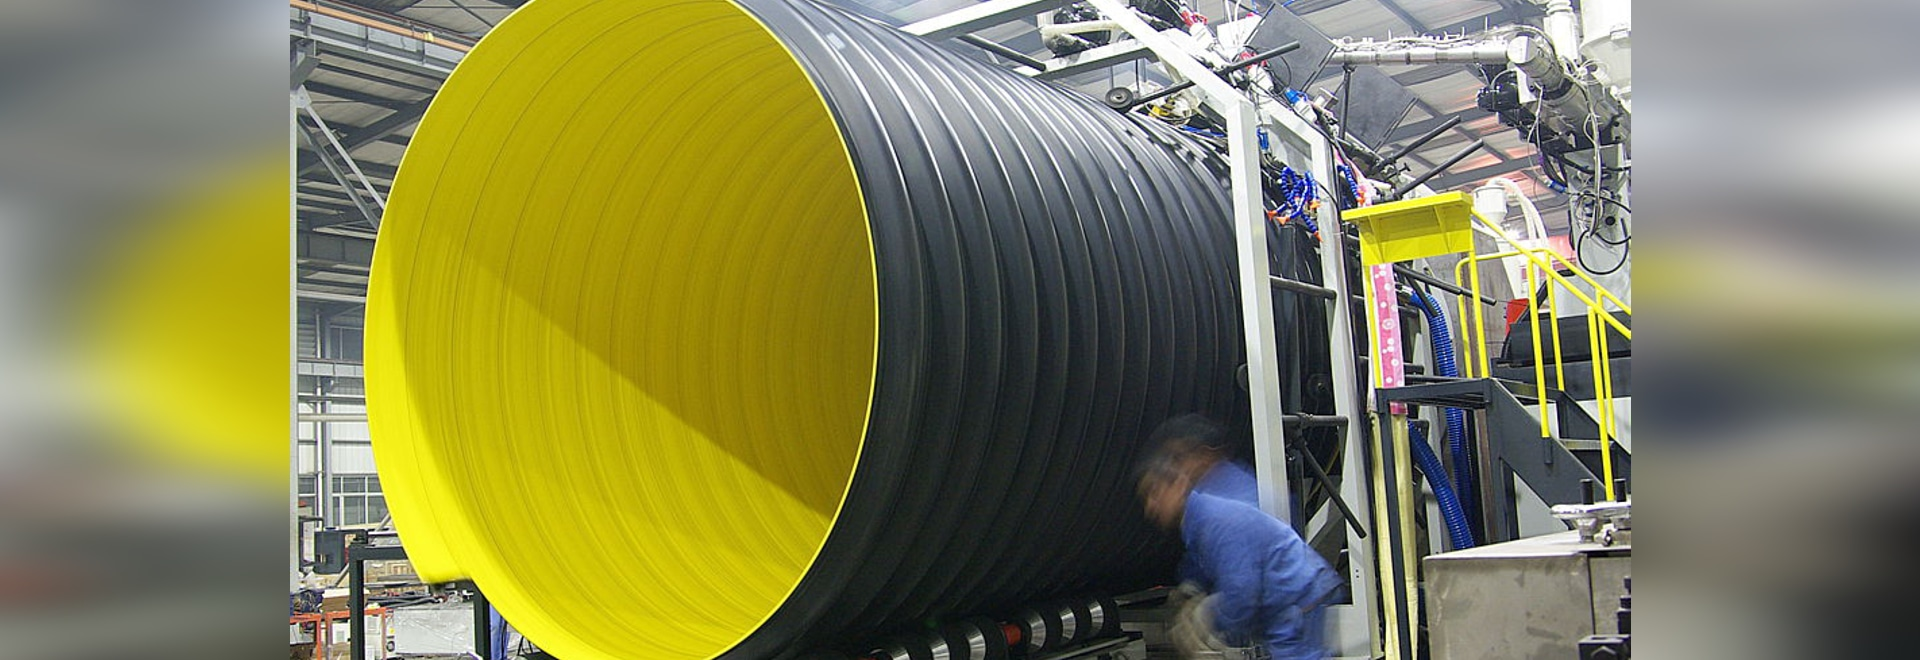 Large Diameter Steel Reinforced Corrugated Plastic Pipe  For The Buried Sewer